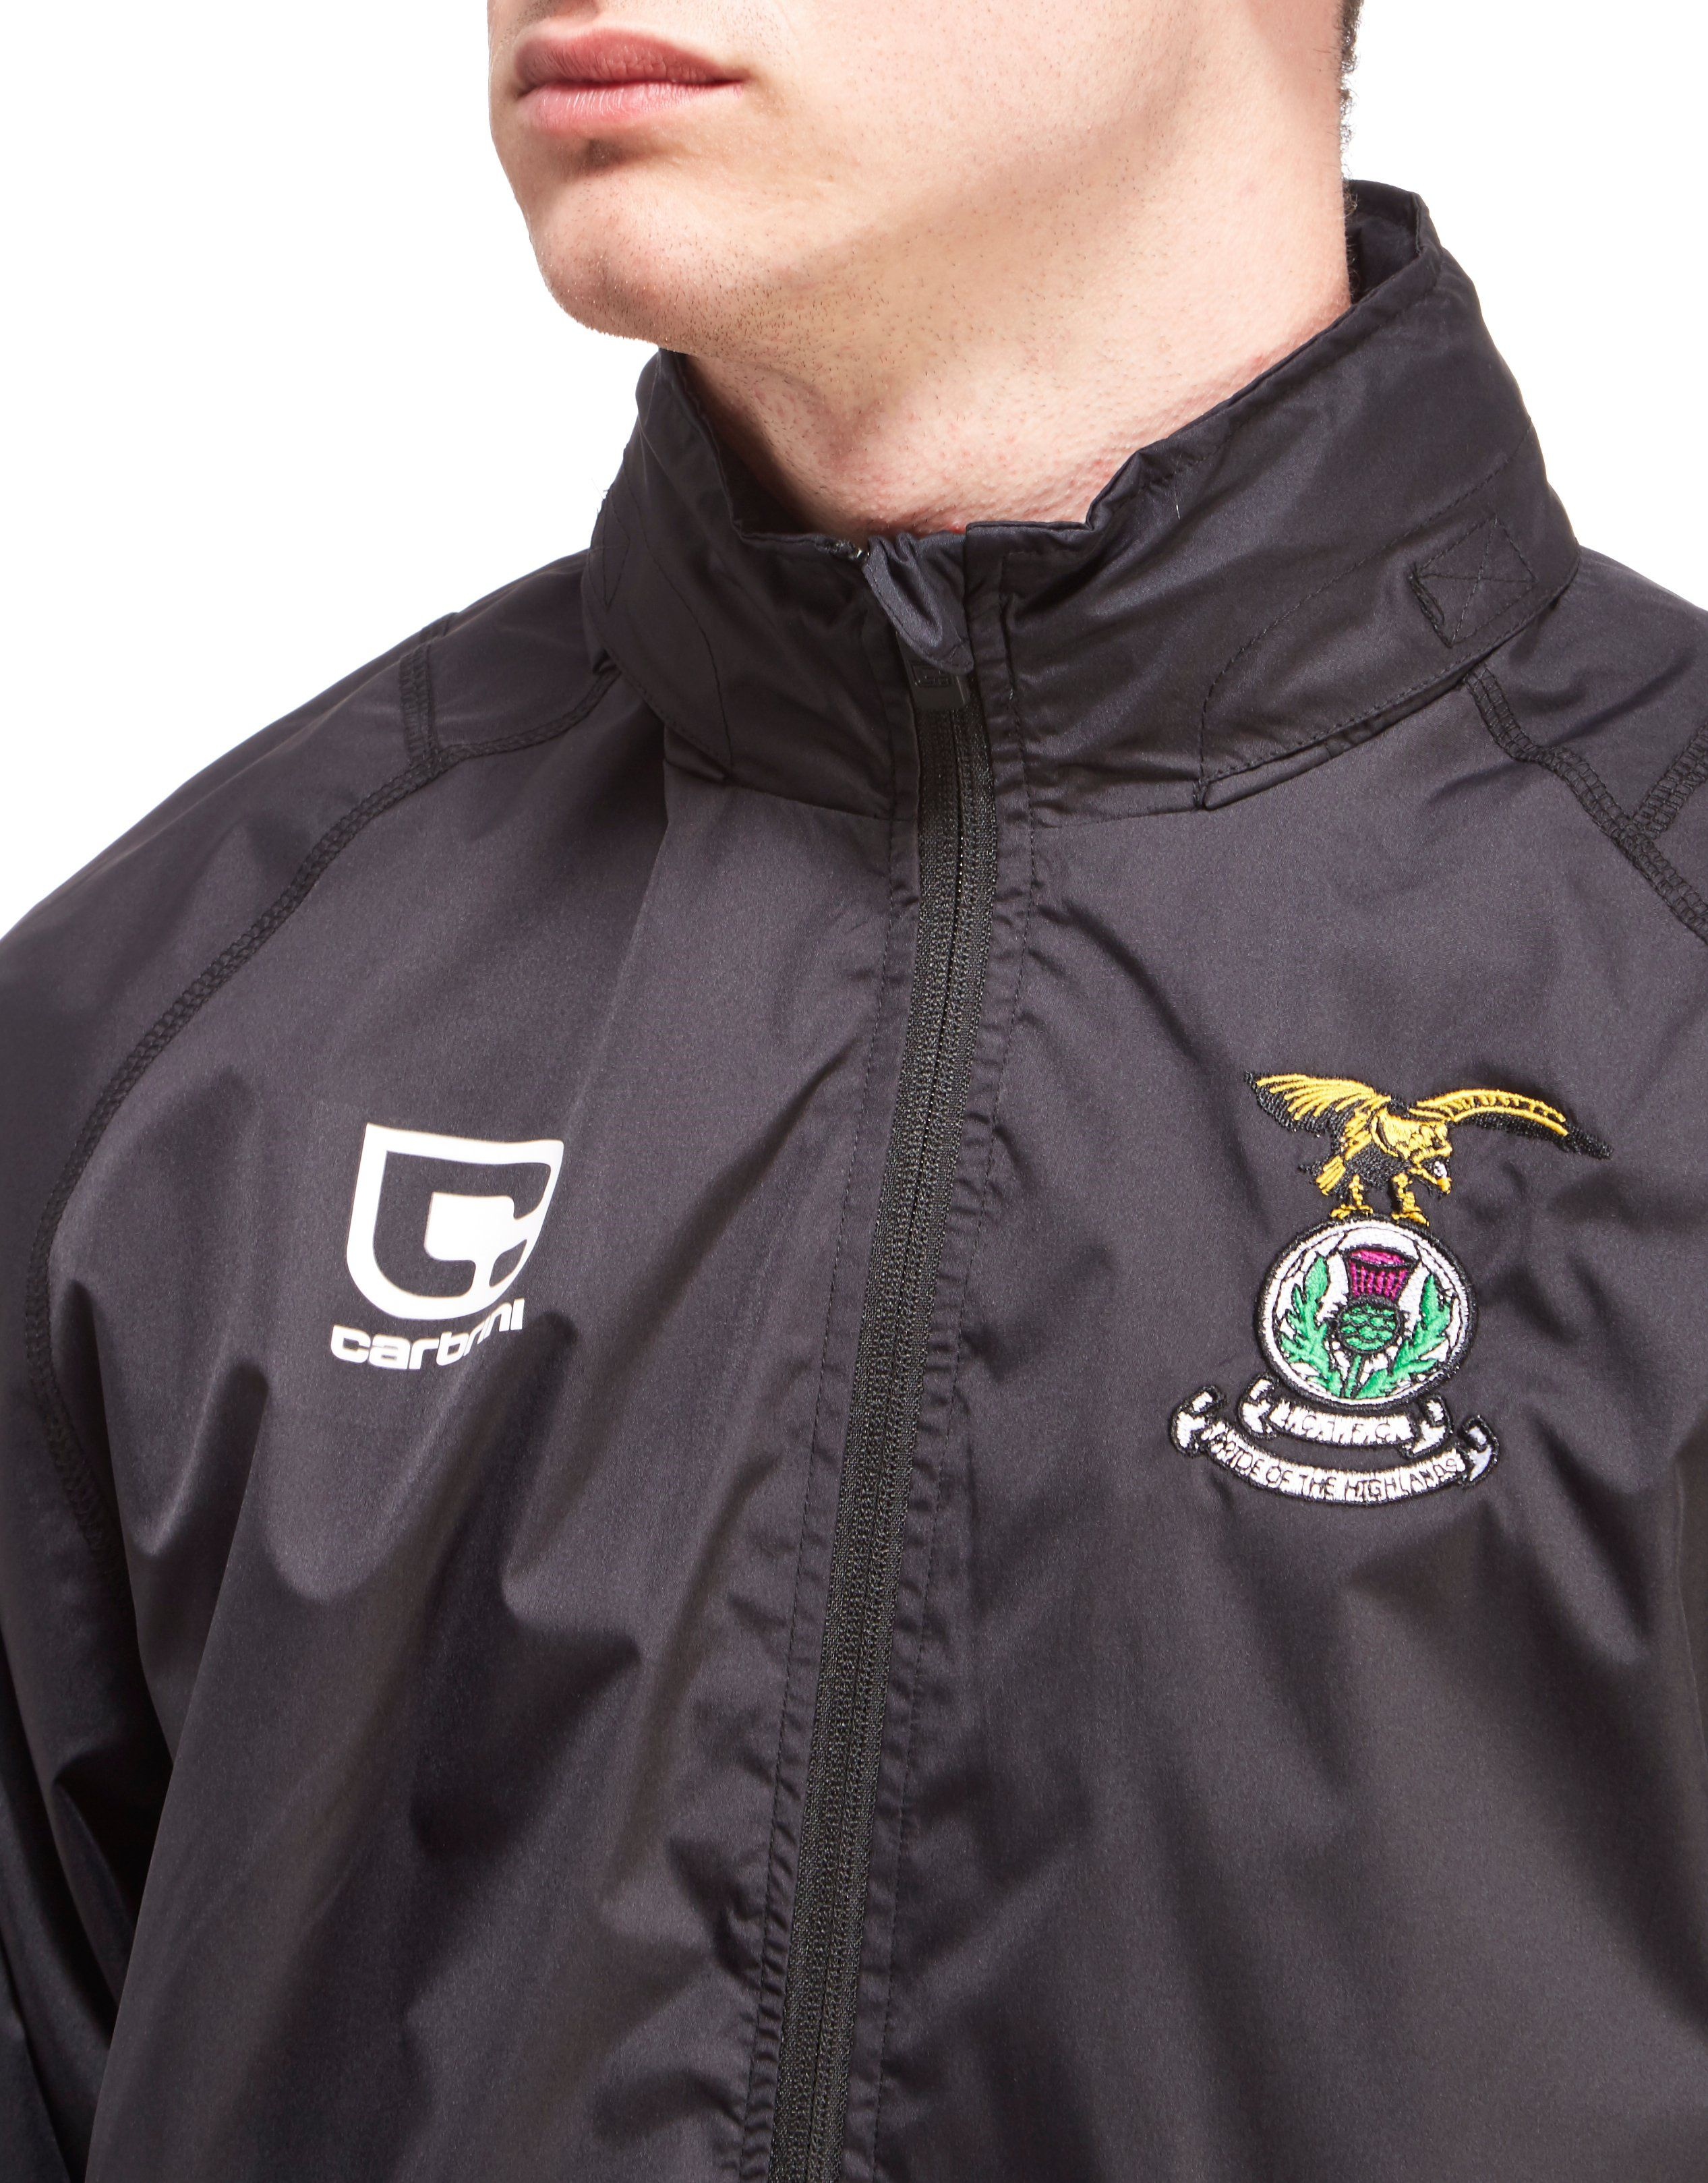 Carbrini Inverness CT 2016/17 Shower Jacket